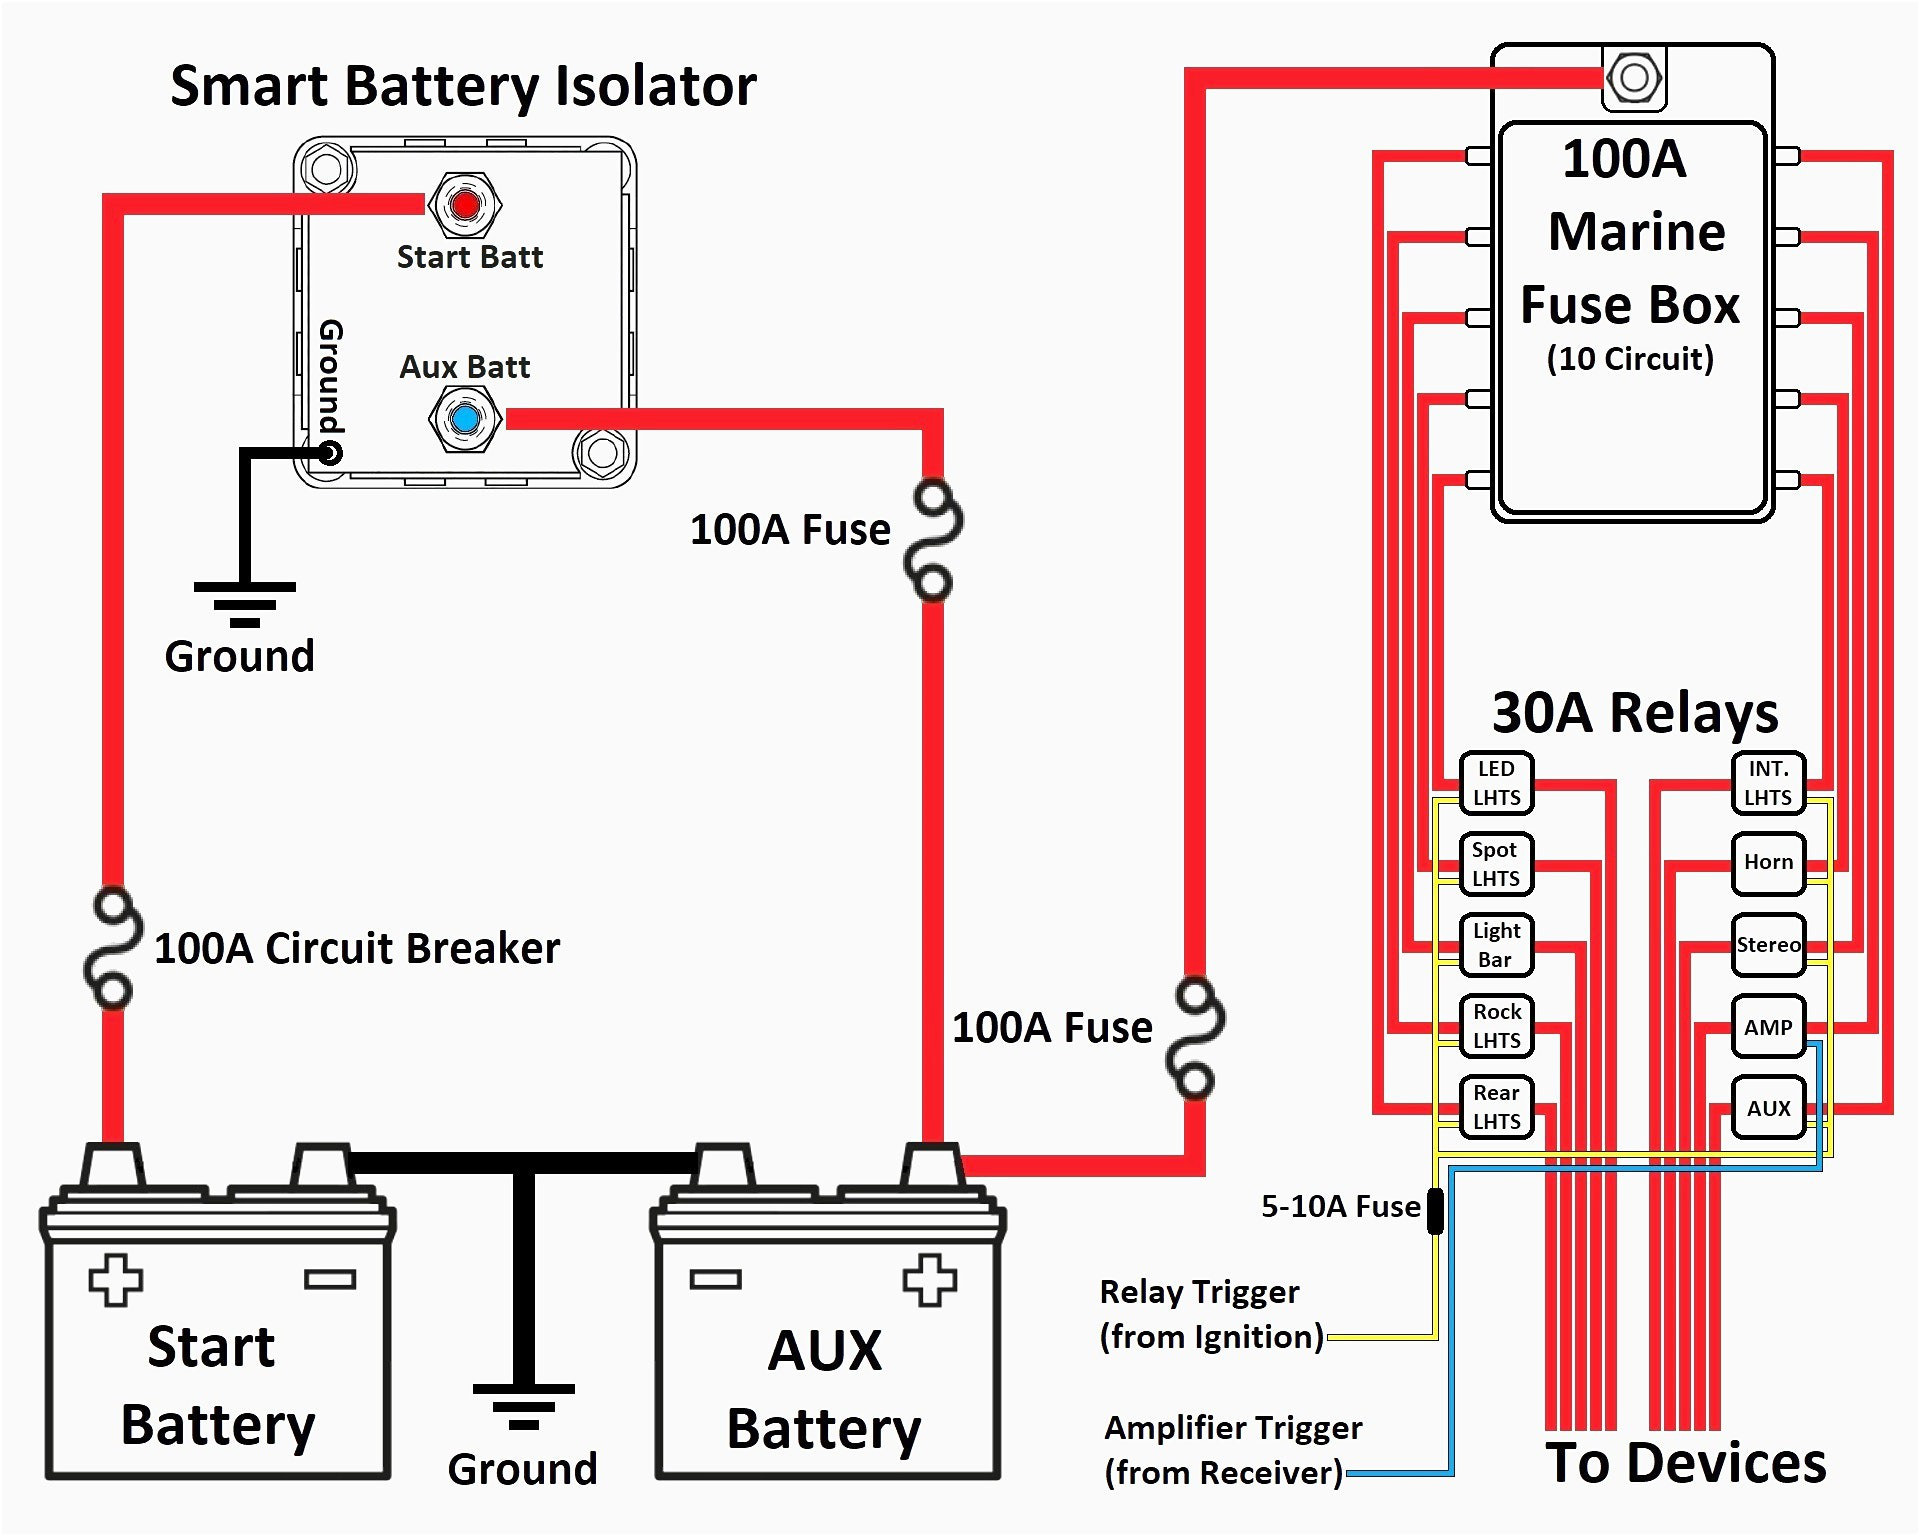 multi battery isolator wiring diagram Download-Battery isolator Wiring Diagram New Battery isolator Wiring Diagram Webtor Ideas Collection Battery 14-k